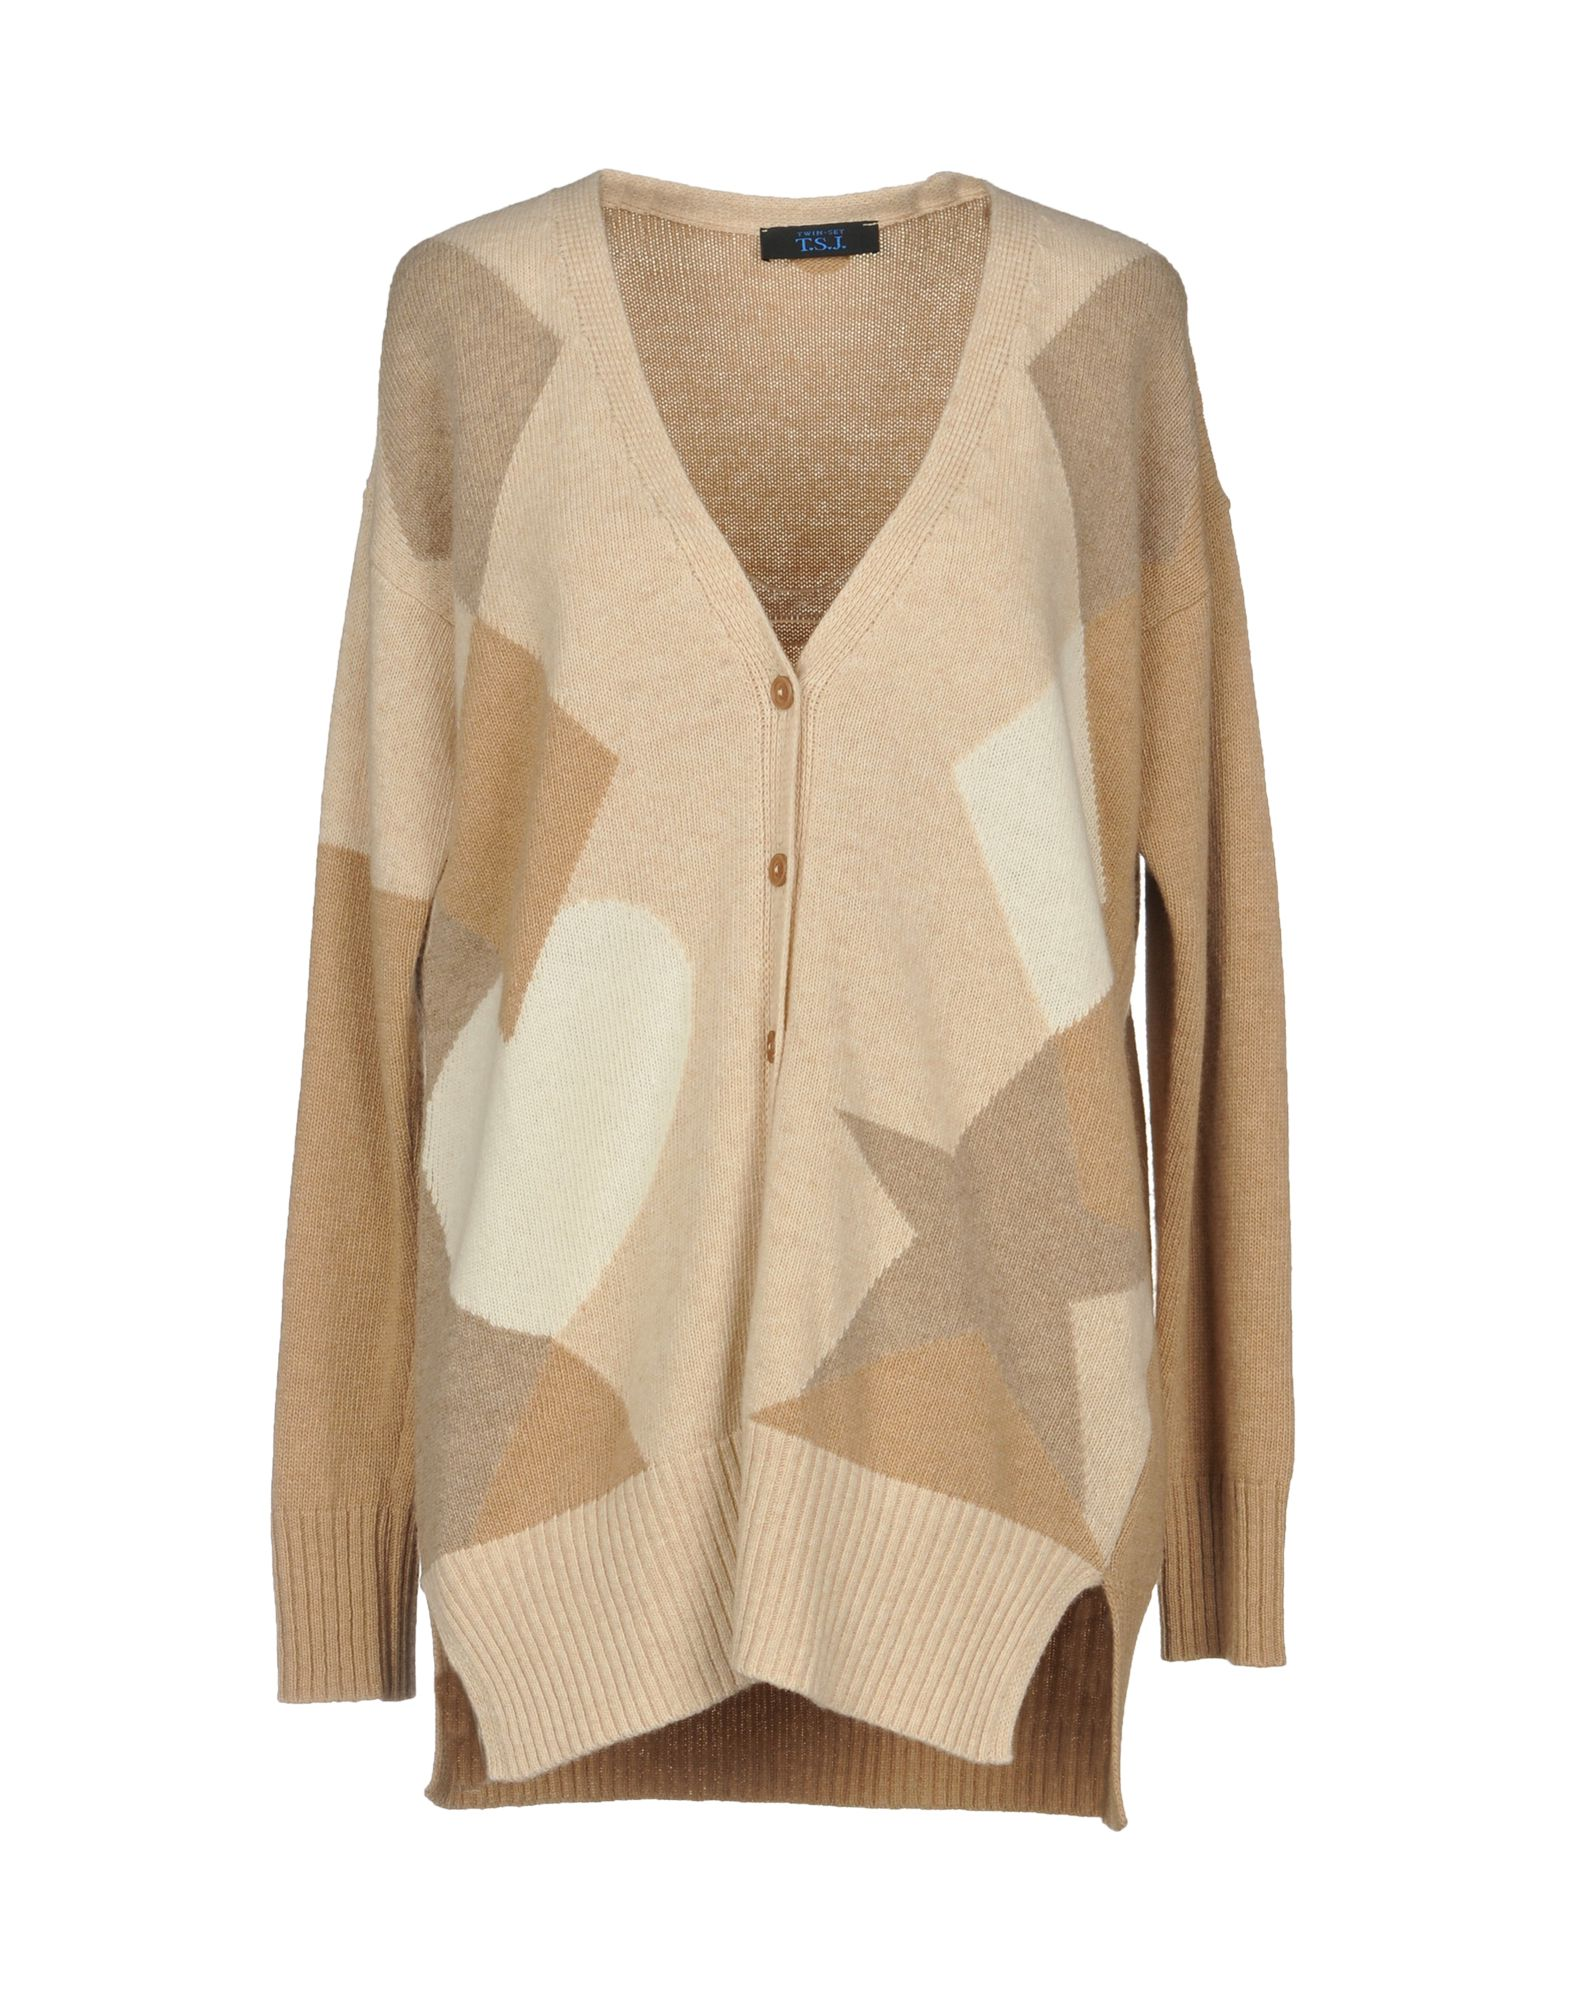 TWIN-SET JEANS Cardigan in Camel